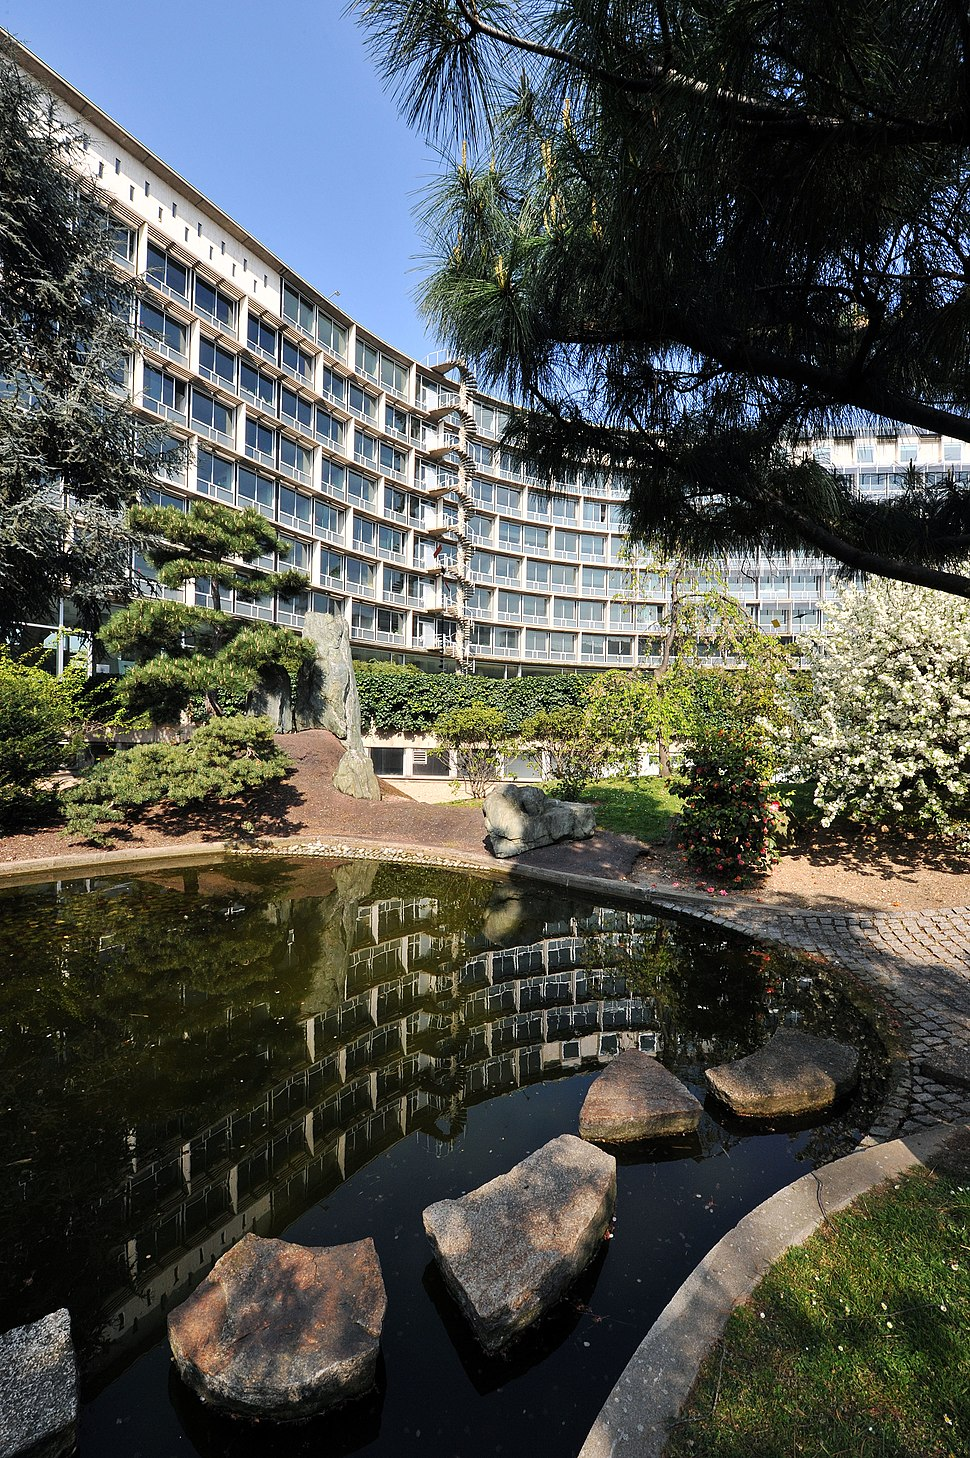 April 2010, UNESCO Headquarters in Paris - The Garden of Peace (or Japanese Garden) in Spring